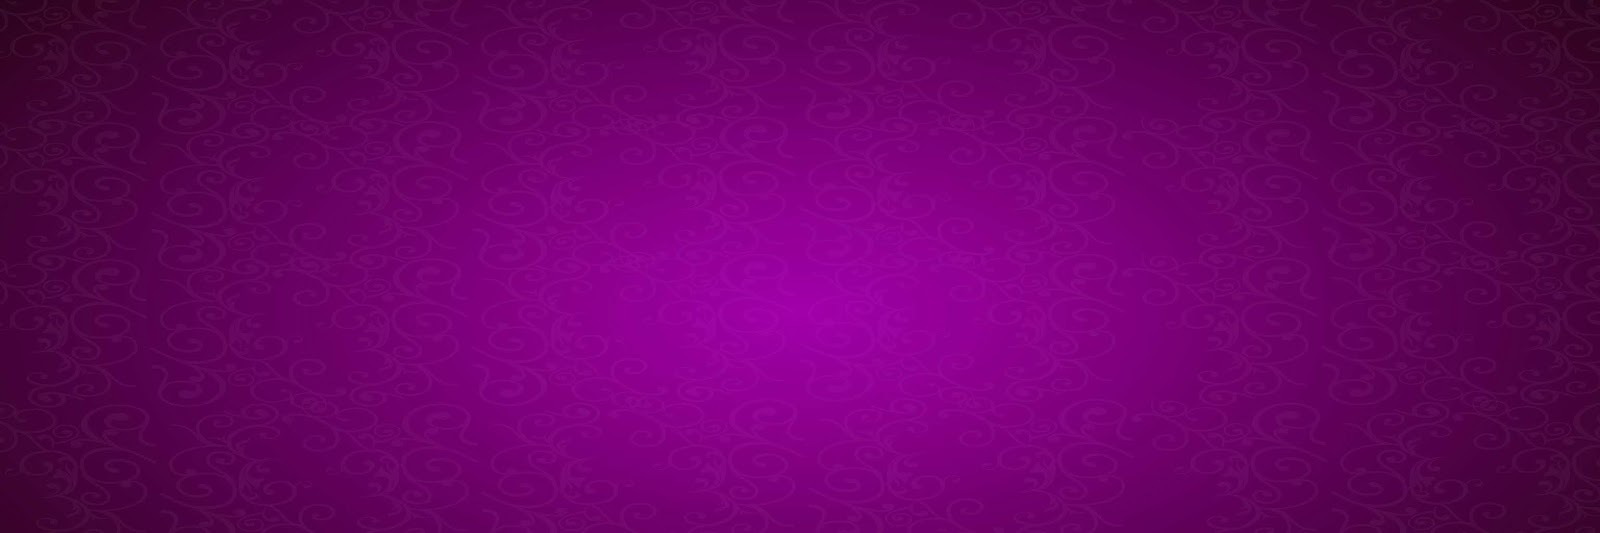 Wedding Background 2020 New Hd Images For Photoshop Hd 1080p